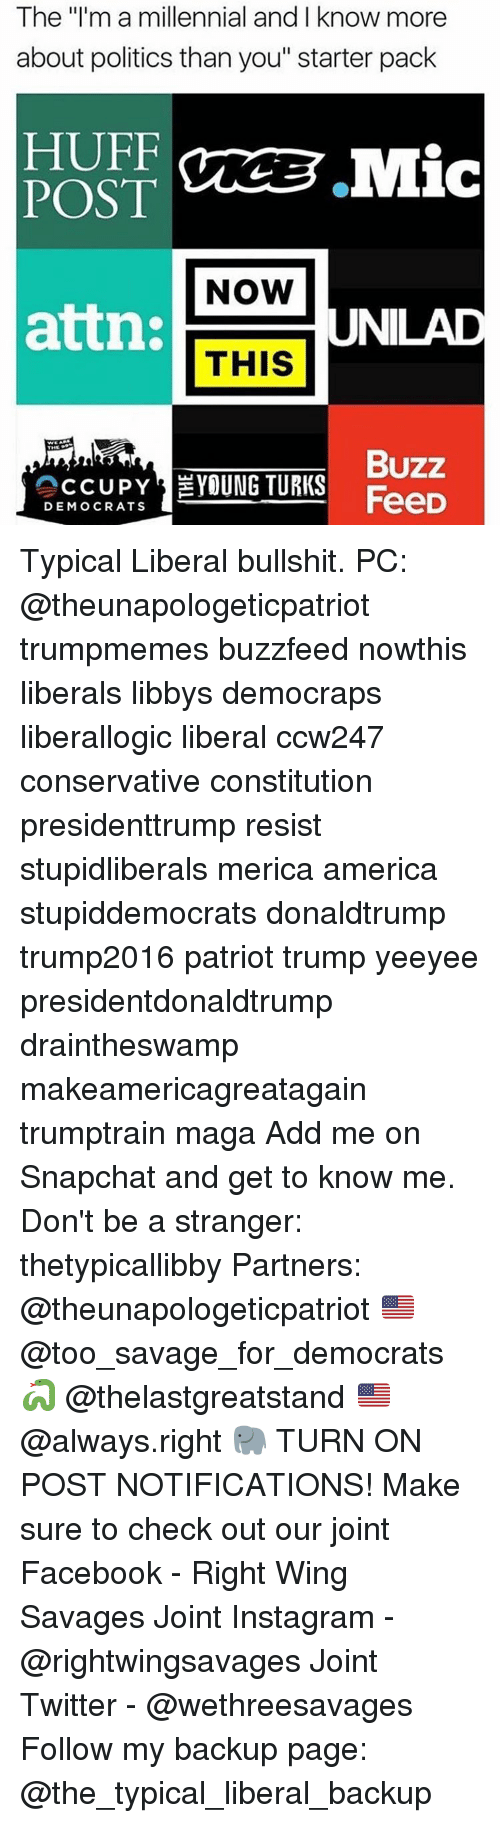 """Buzzfees: The """"I'm a millennial and I know more  about politics than you"""" starter pack  HUFF  Mic  POST  NOW  attn:  THIS  UNILAD  Buzz  CCUPY  YOUNG TURKS  FeeD  DEMOCRATS Typical Liberal bullshit. PC: @theunapologeticpatriot trumpmemes buzzfeed nowthis liberals libbys democraps liberallogic liberal ccw247 conservative constitution presidenttrump resist stupidliberals merica america stupiddemocrats donaldtrump trump2016 patriot trump yeeyee presidentdonaldtrump draintheswamp makeamericagreatagain trumptrain maga Add me on Snapchat and get to know me. Don't be a stranger: thetypicallibby Partners: @theunapologeticpatriot 🇺🇸 @too_savage_for_democrats 🐍 @thelastgreatstand 🇺🇸 @always.right 🐘 TURN ON POST NOTIFICATIONS! Make sure to check out our joint Facebook - Right Wing Savages Joint Instagram - @rightwingsavages Joint Twitter - @wethreesavages Follow my backup page: @the_typical_liberal_backup"""